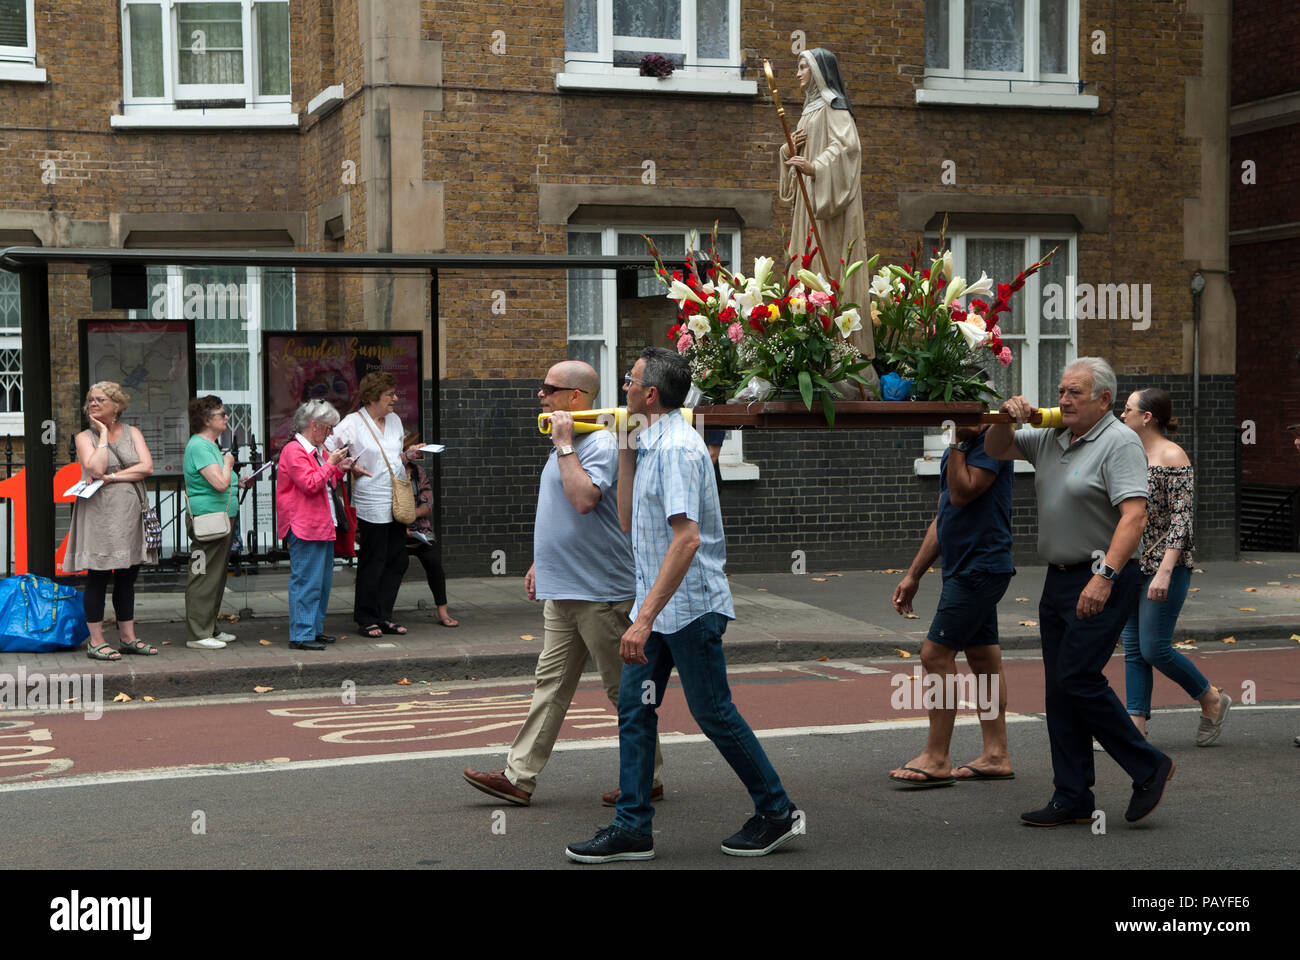 Roman Catholic procession Christianity UK. People Italian community annual procession Saint Peters,  St Peters Italian Church London people watching   HOMER SYKES Stock Photo